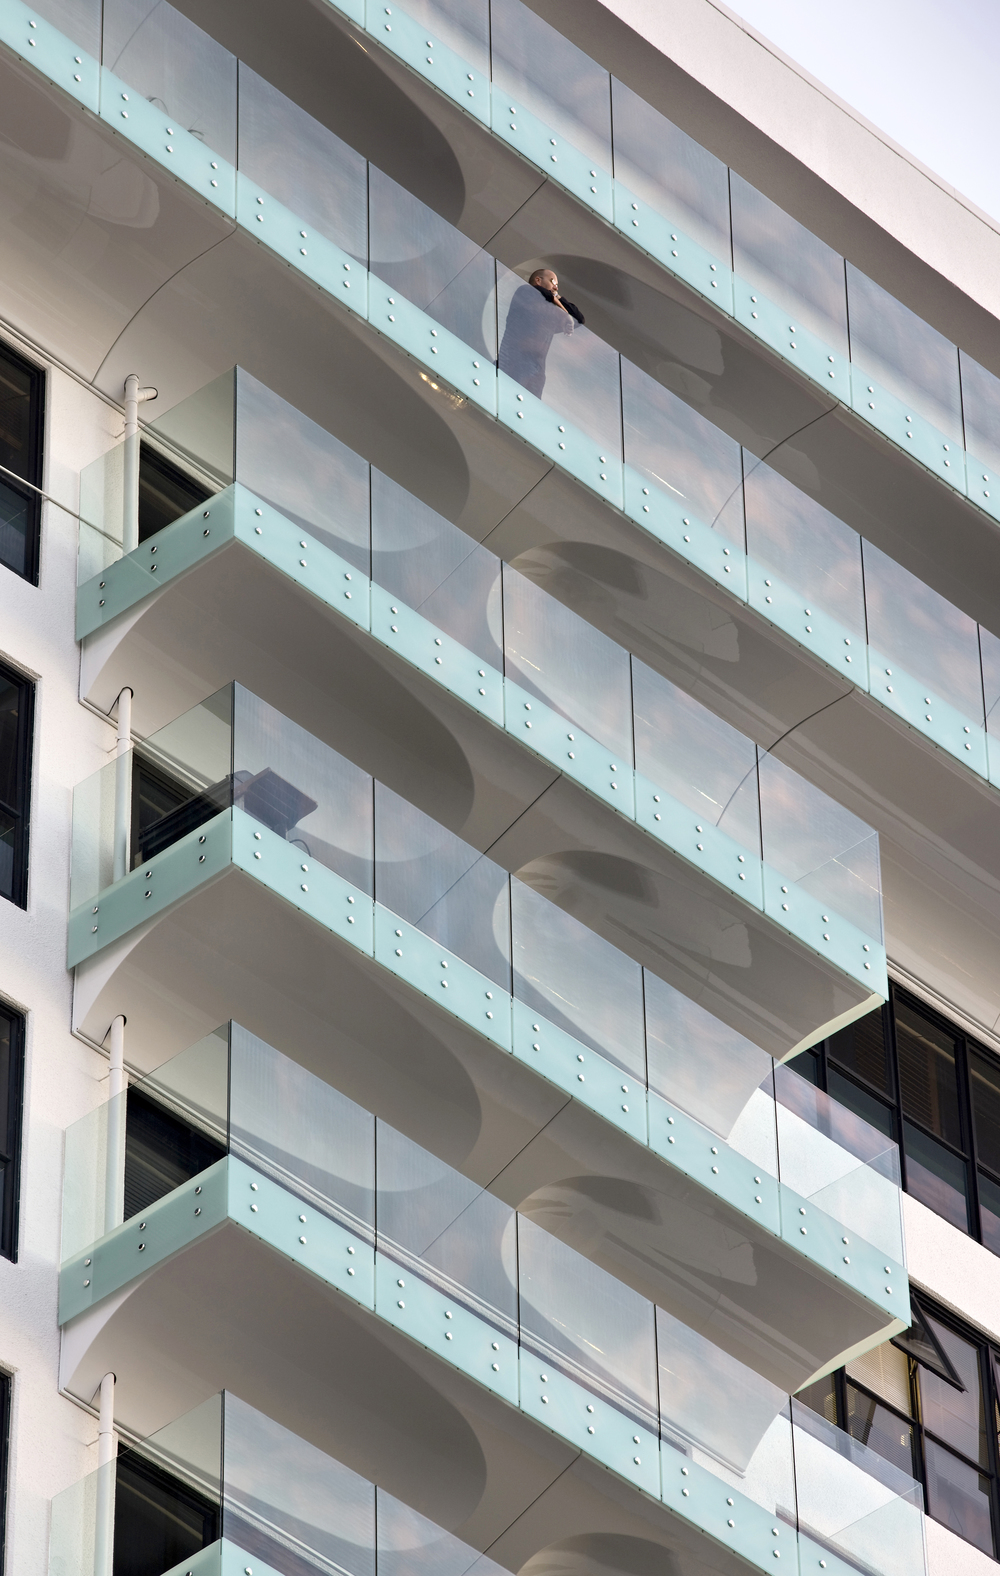 HarbourView_Balconies_K7768_L.jpg